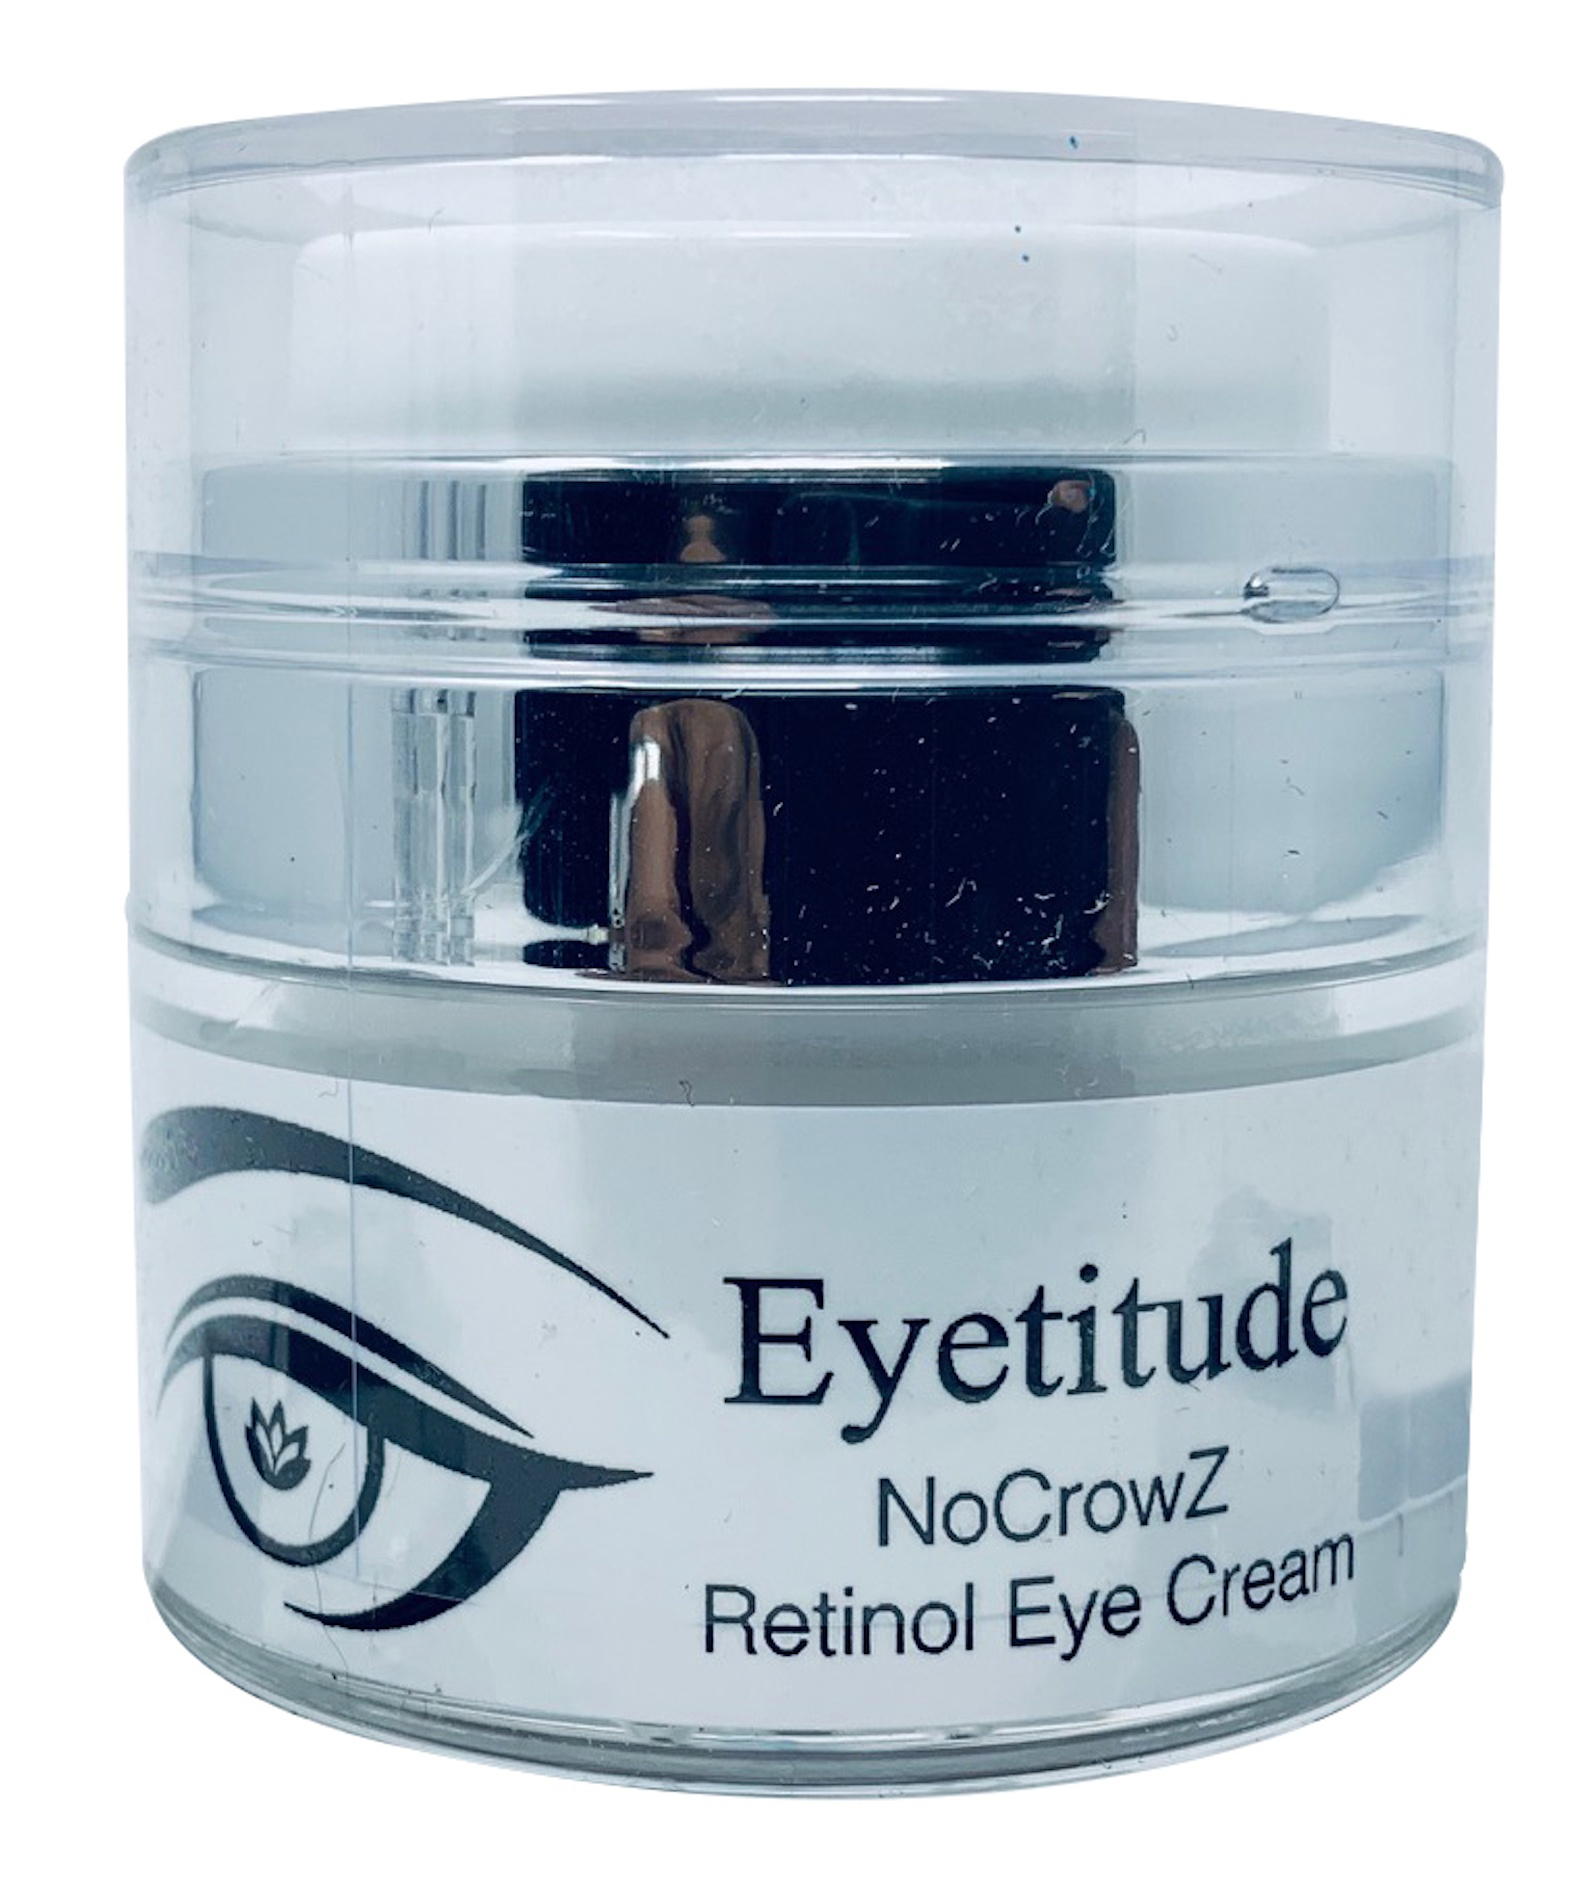 Eyetitude Retinol Eye Cream